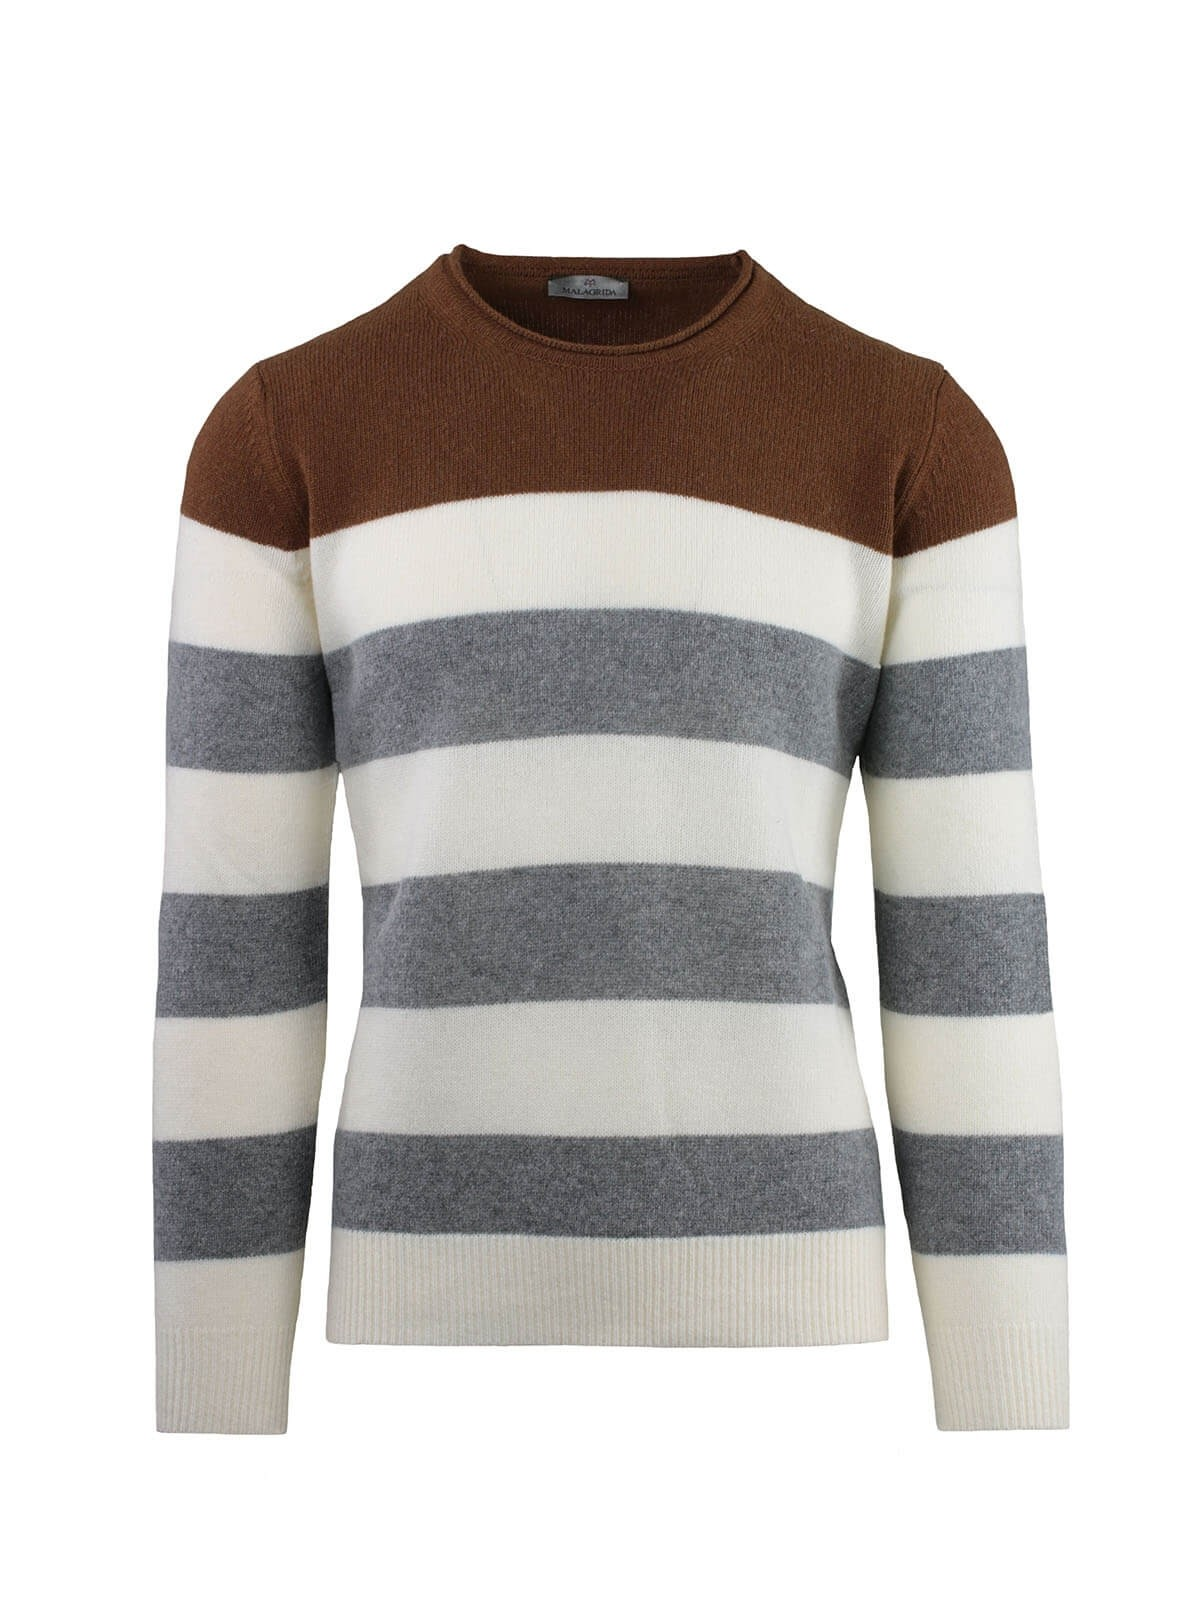 ROUND NECK AT LINES